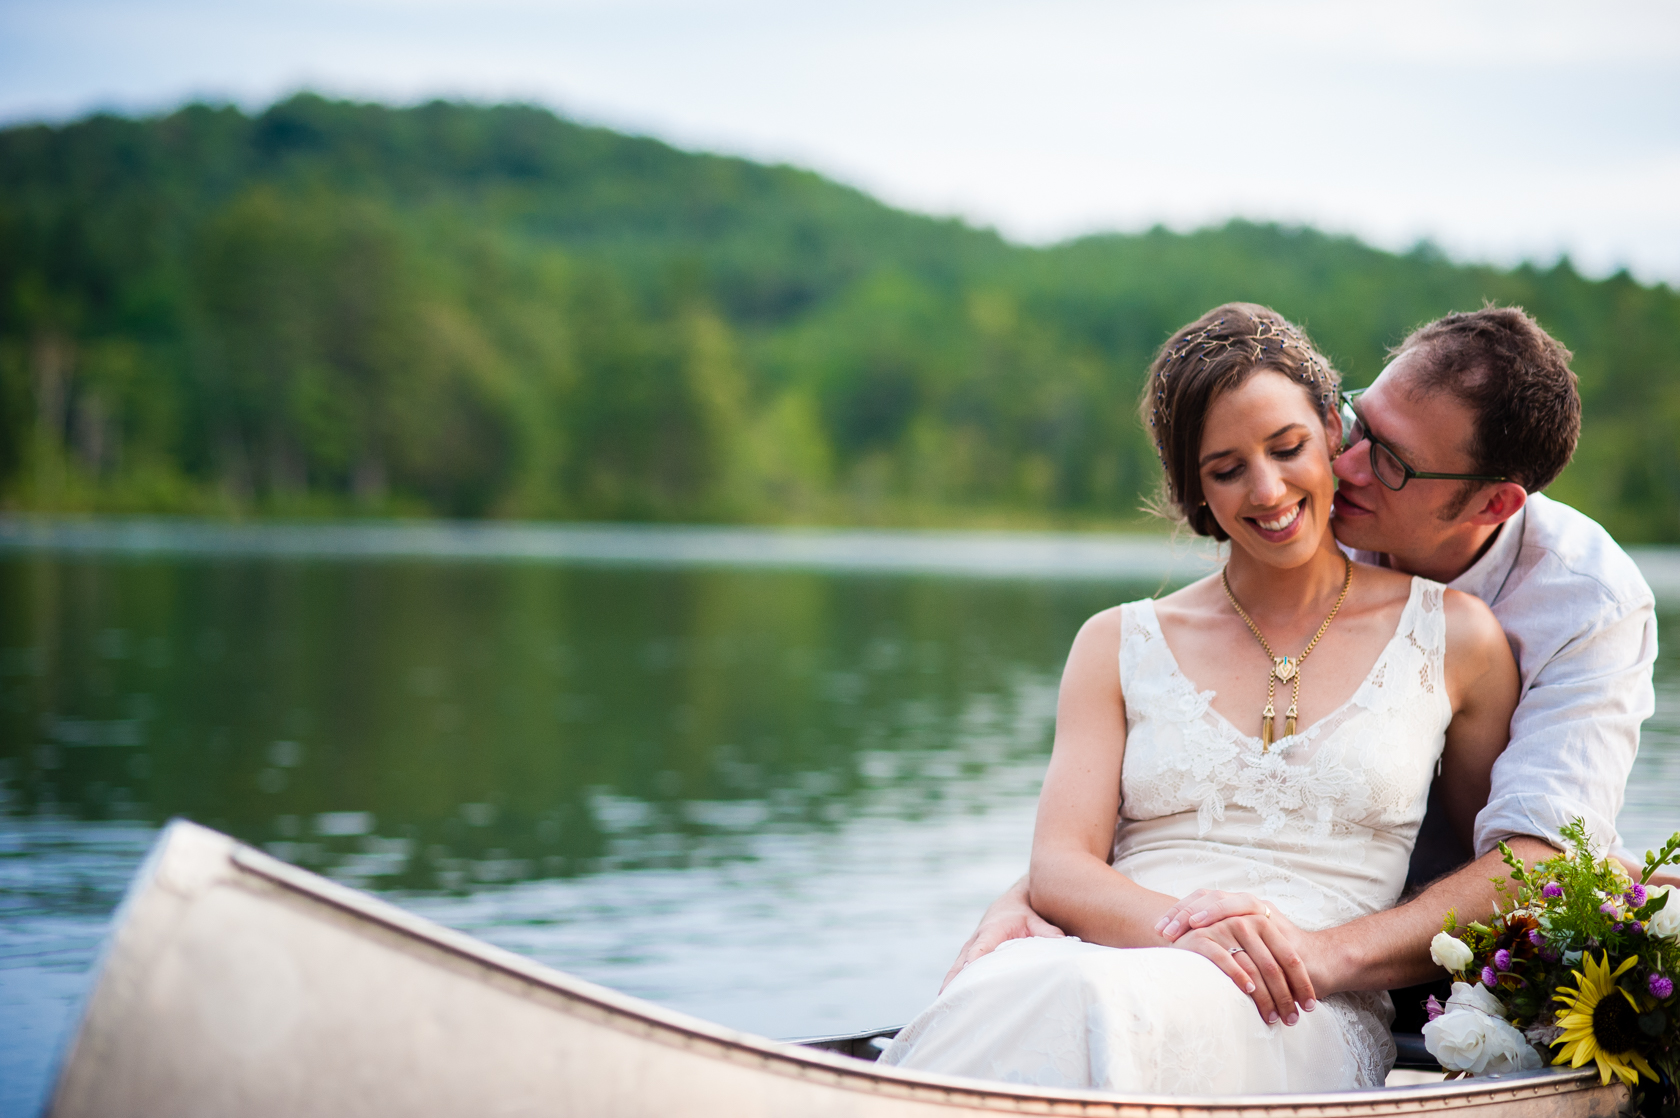 groom gives his bride a kiss on the cheek during their post wedding canoe paddle on the lake